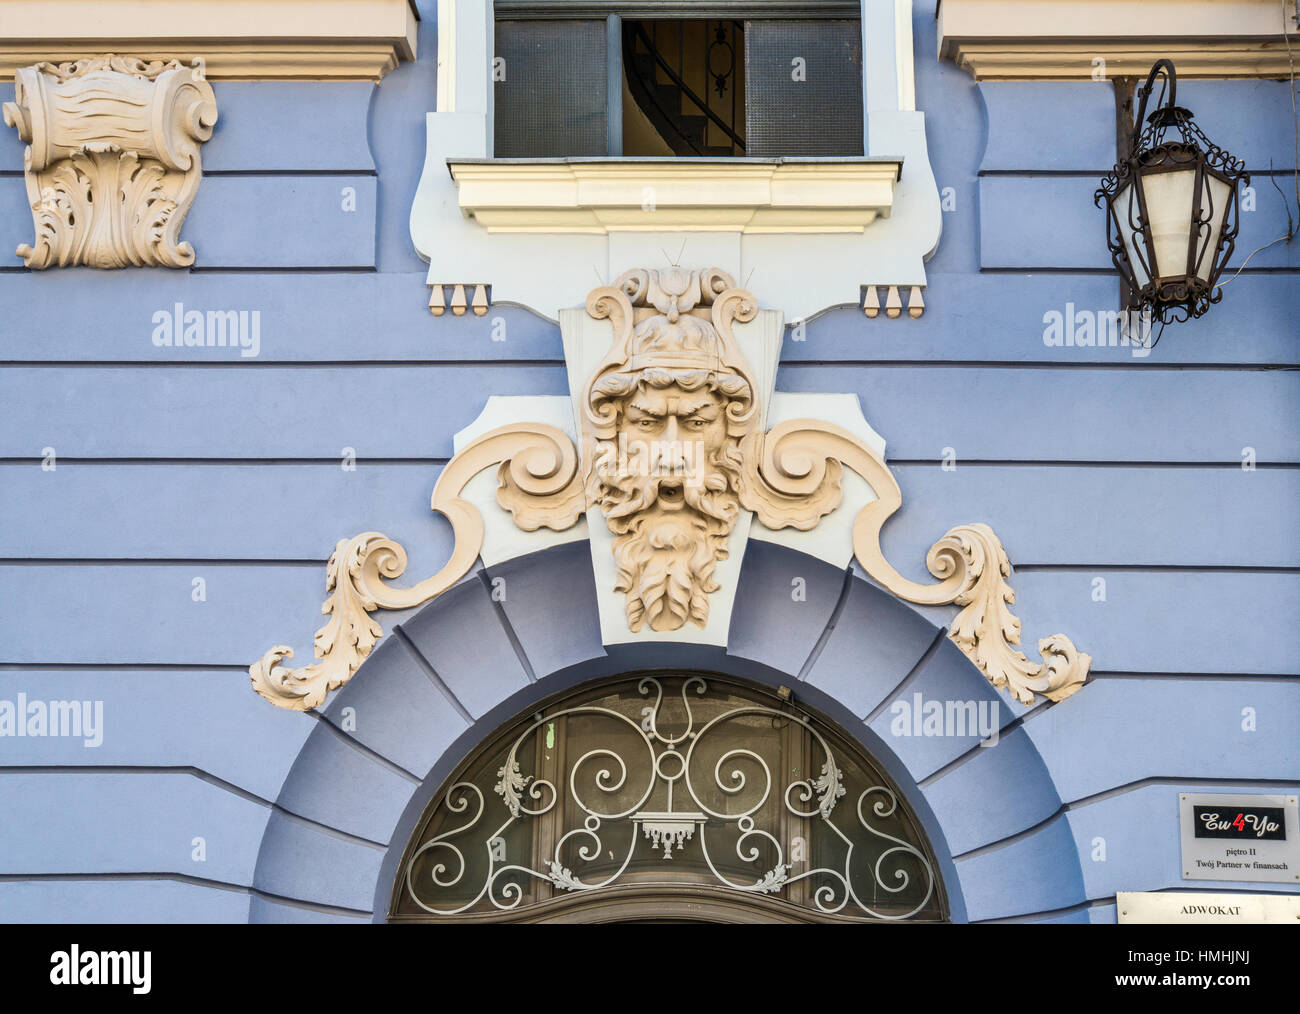 Detail of building at Podcienie, street in Old Town district of Bielsko-Biala, Silesia, Poland - Stock Image